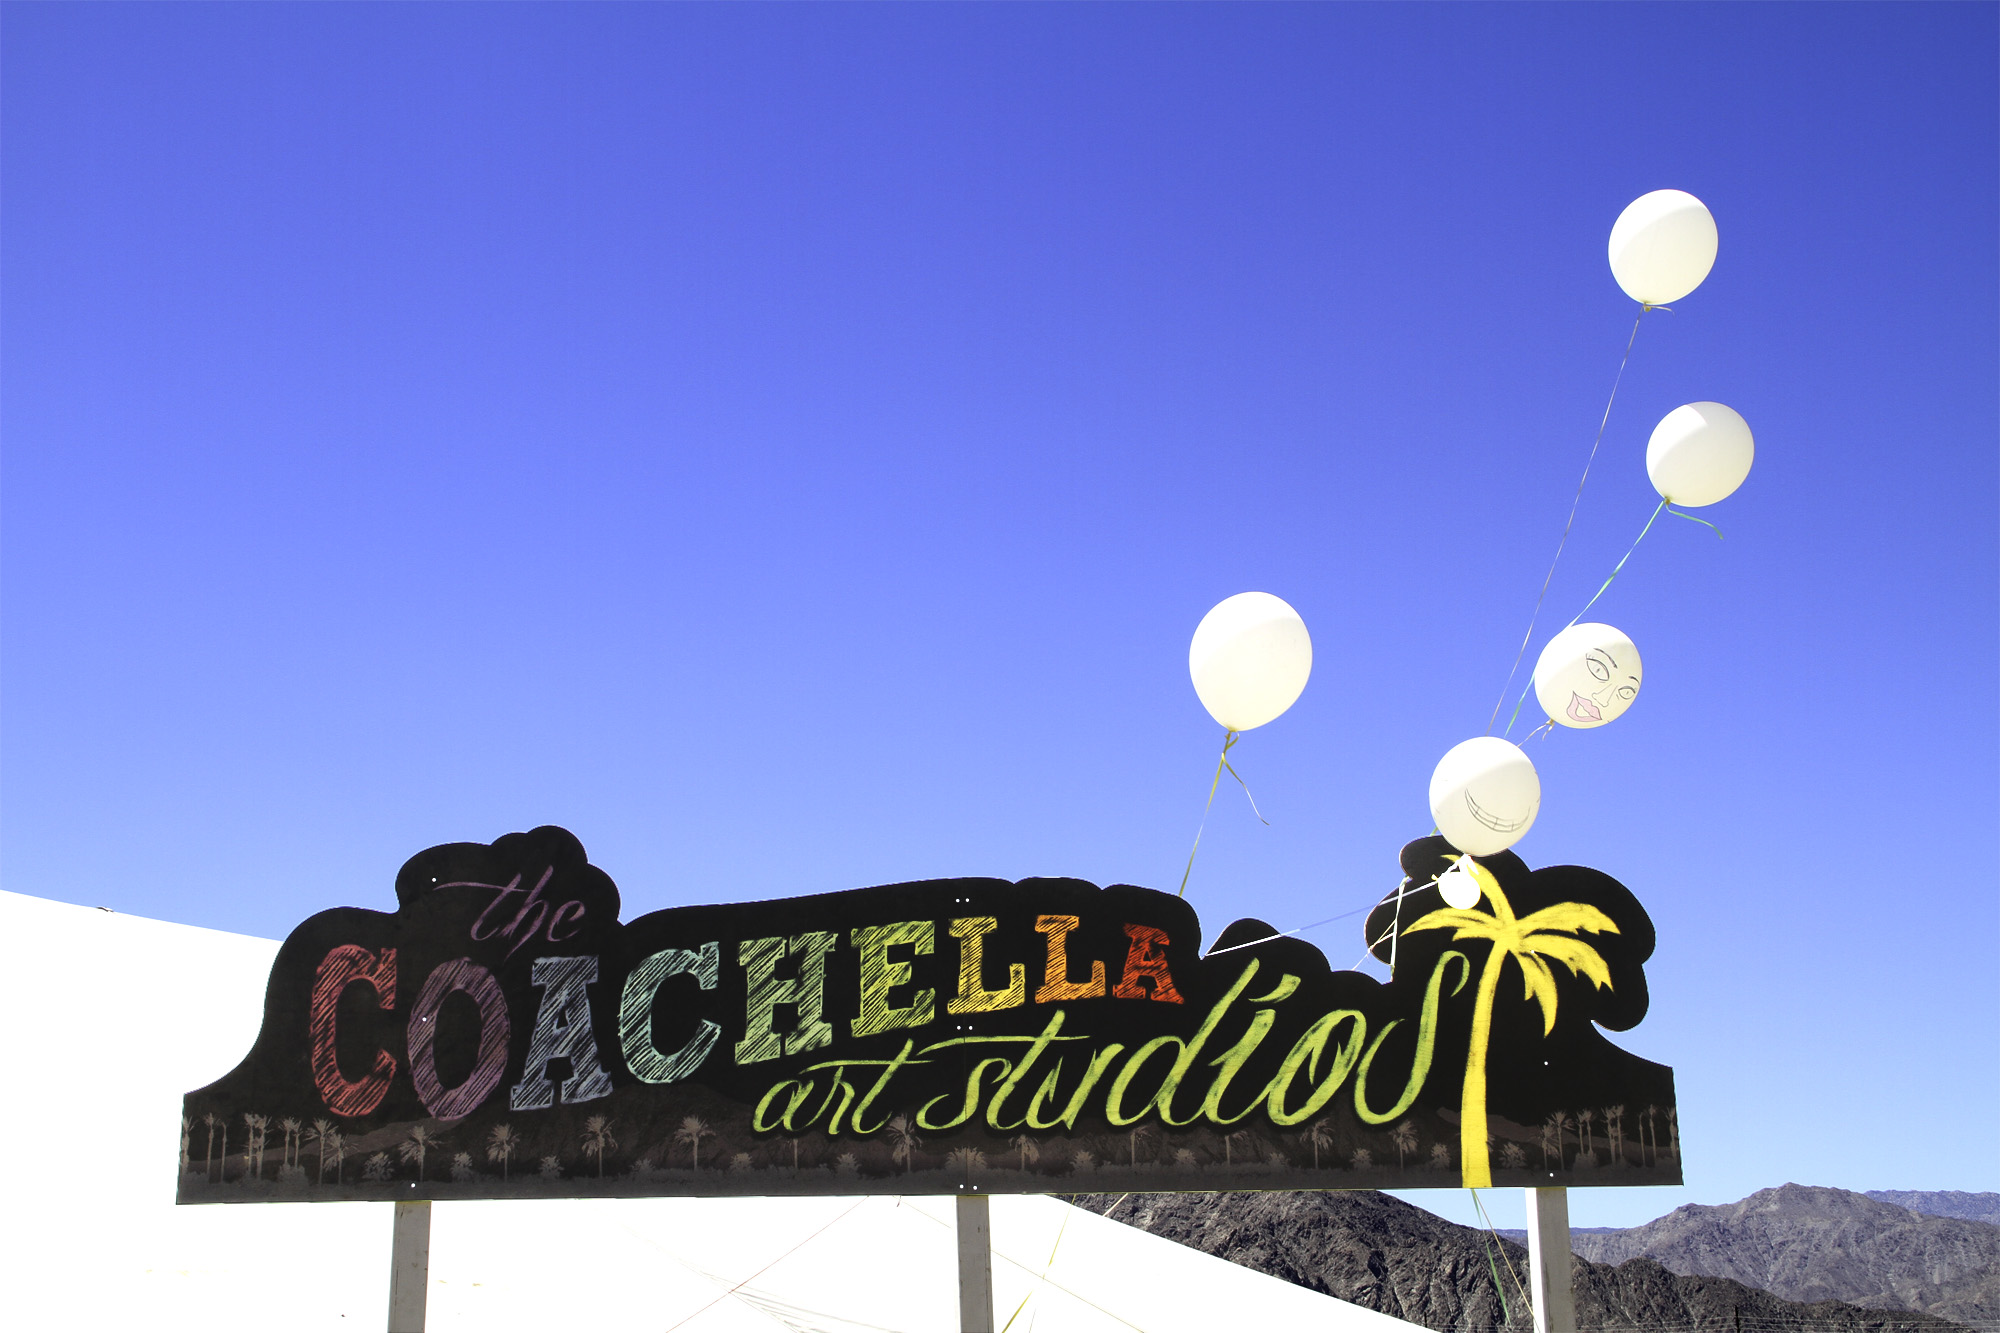 Coachella Art Studios at teh Coachella Valley Music and Arts Festival